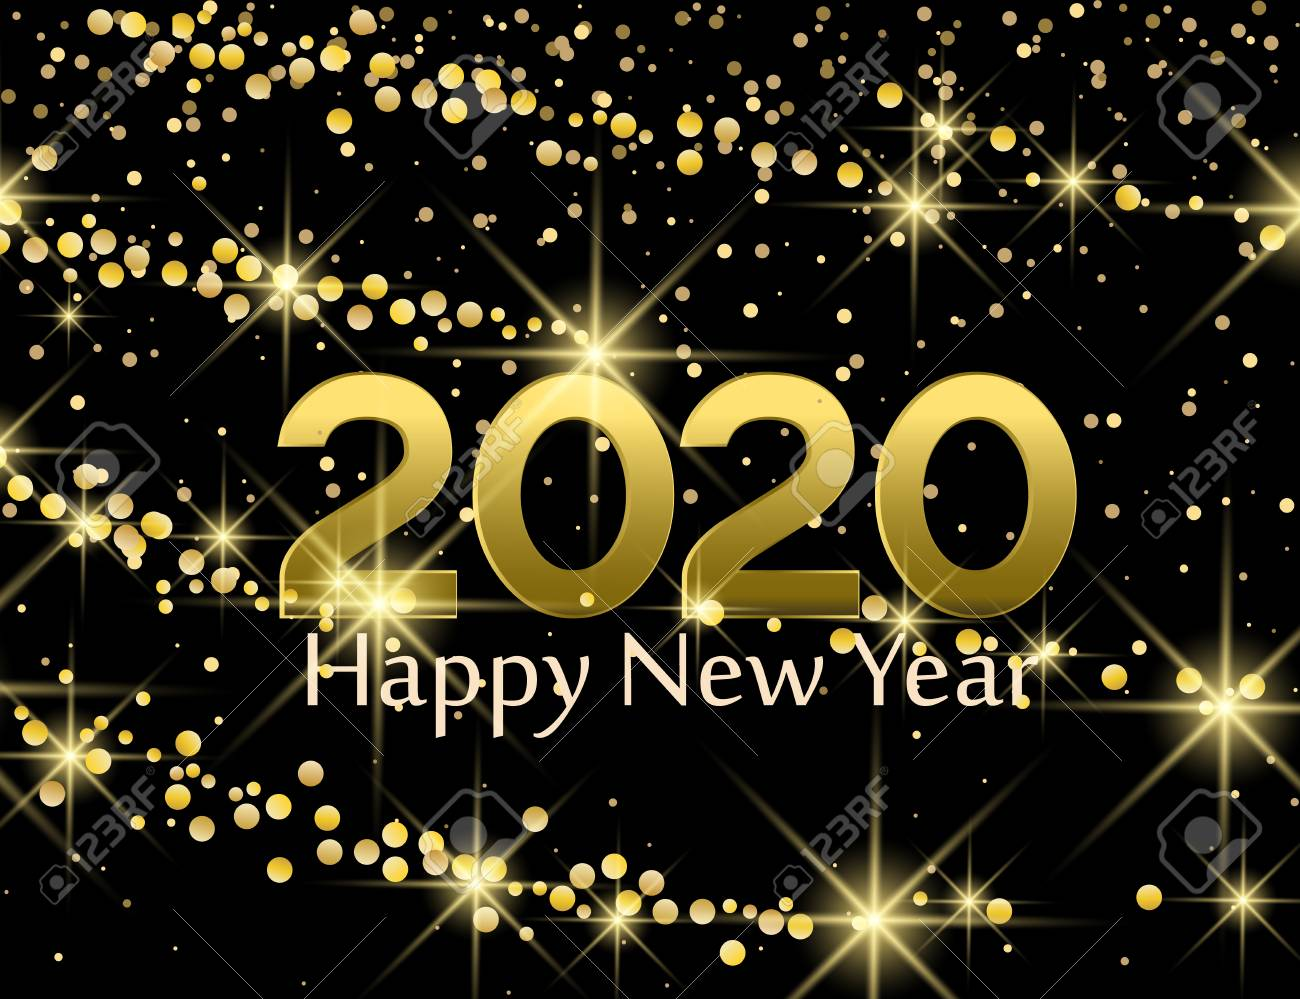 New Christmas Music 2020 Merry Christmas Card, 2020 Happy New Year Background. String